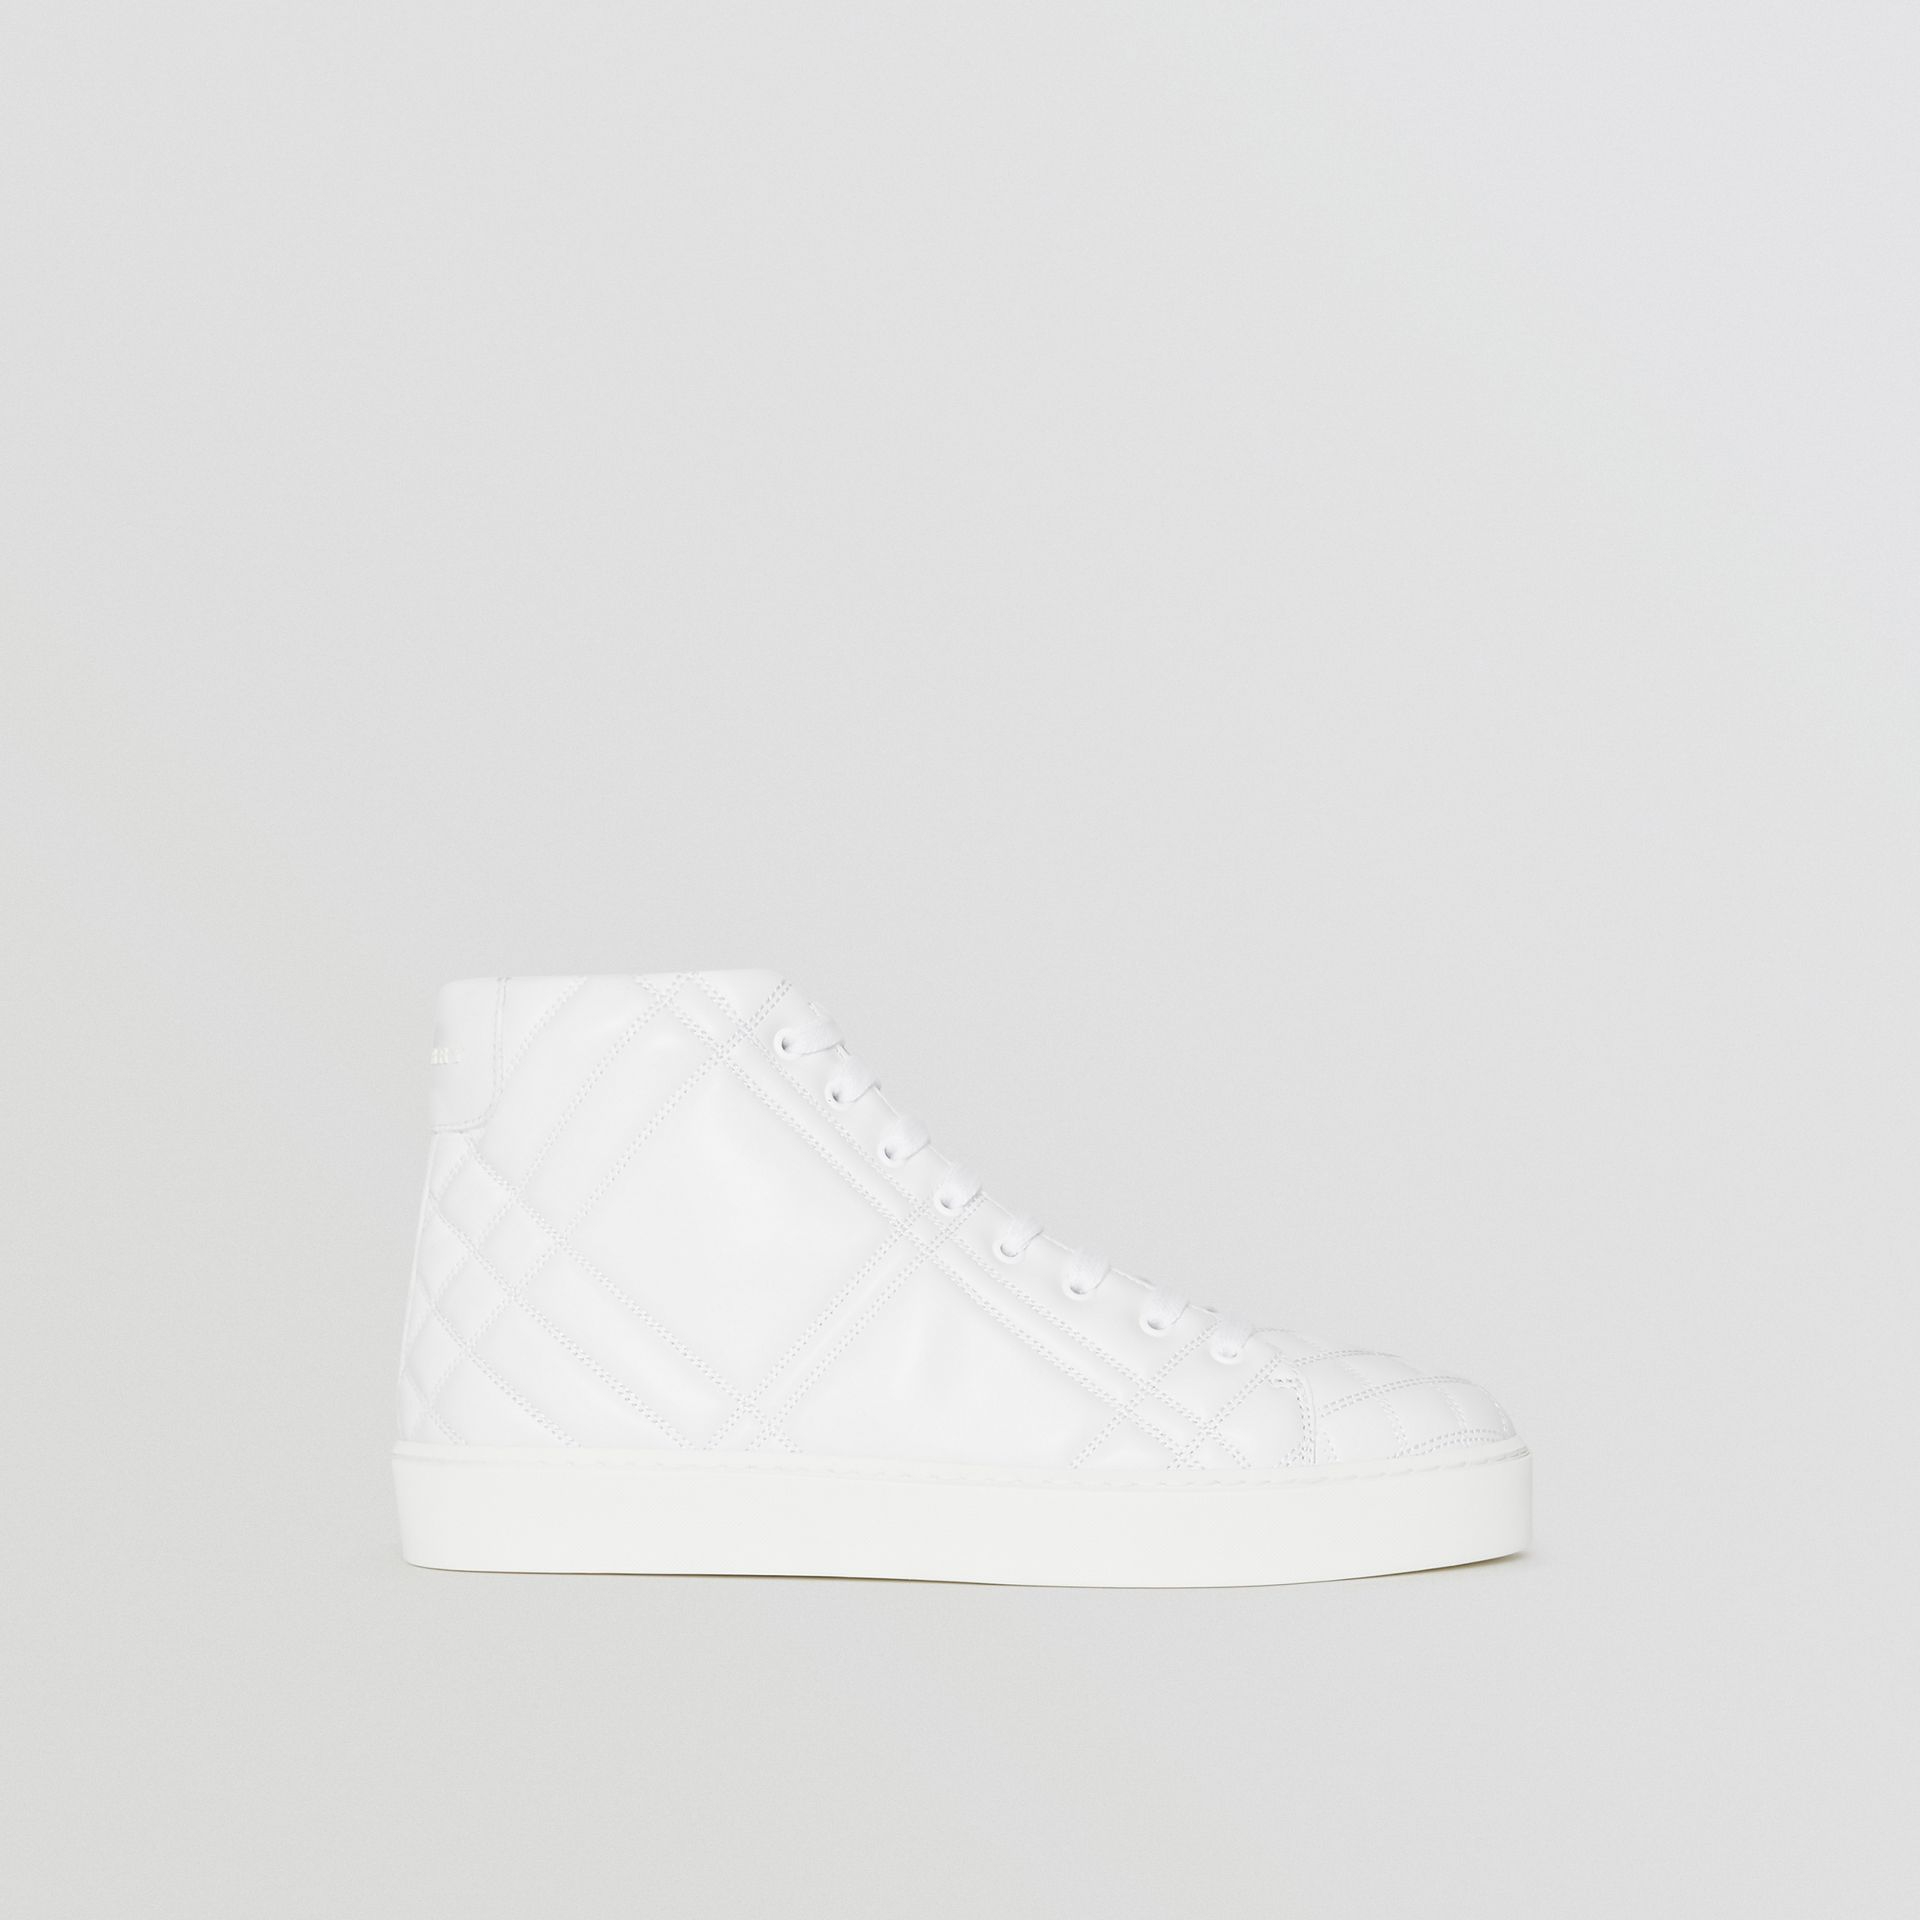 Sneakers montantes en cuir avec matelassage à motif check (Blanc Optique) - Femme | Burberry Canada - photo de la galerie 5